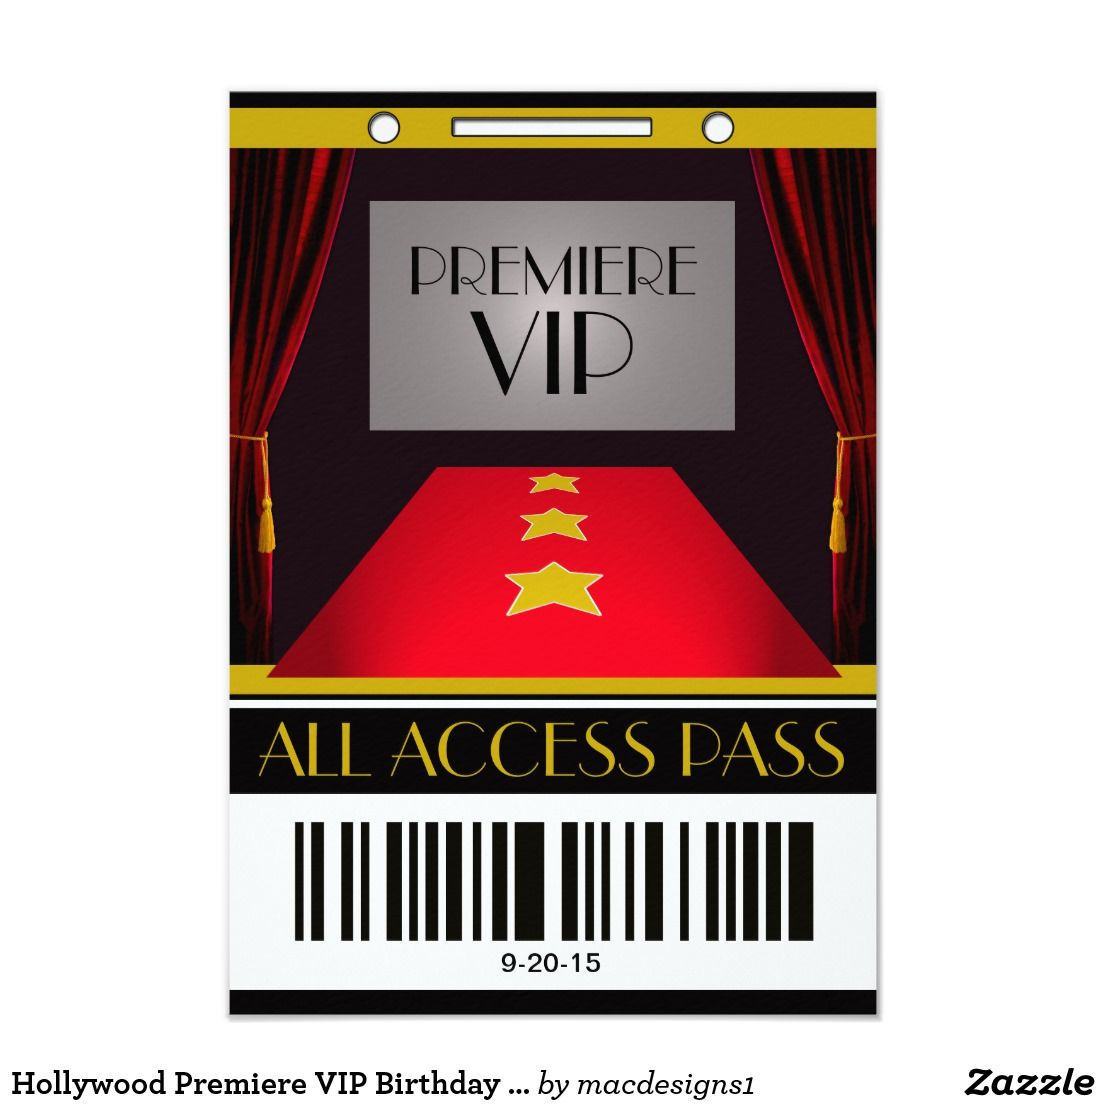 film premiere invitation template - hollywood premiere vip birthday party card themed